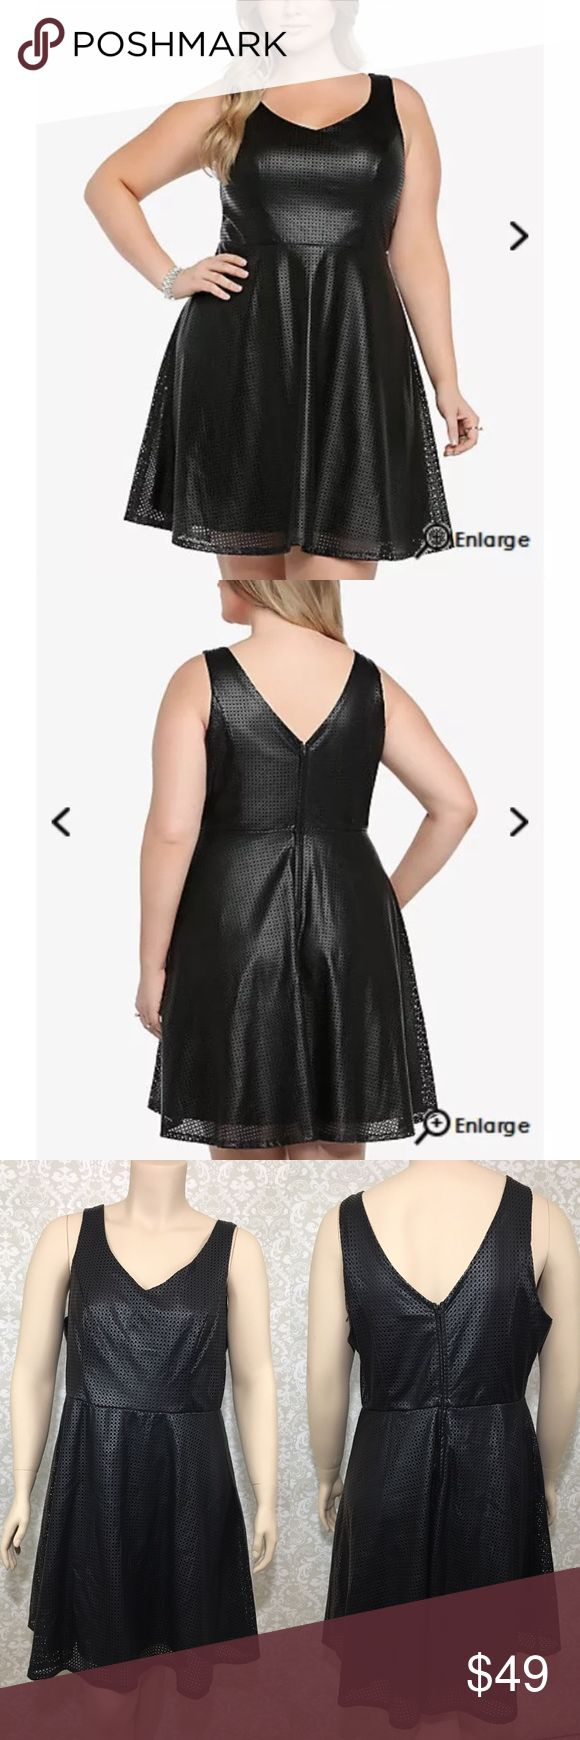 "TORRID 16 Dress Perforated Faux Leather Black TORRID Retail: $75.00 Women Plus Size 16 (I believe this dress runs big, best fit would most likely be a 16/18, rather a 14/16) Dress  Perforated  Faux Leather  Black  Sleeveless  Skater Fully Lined (stretchy lining) Overall excellent condition. Minimal to no wear seen.   All measurements are approximate and are measured laying flat. Please use measurements to determine best fit.  Top to bottom: 41"" Waist: 19"" Chest: 23"" Hip: 28"" (dress flares…"